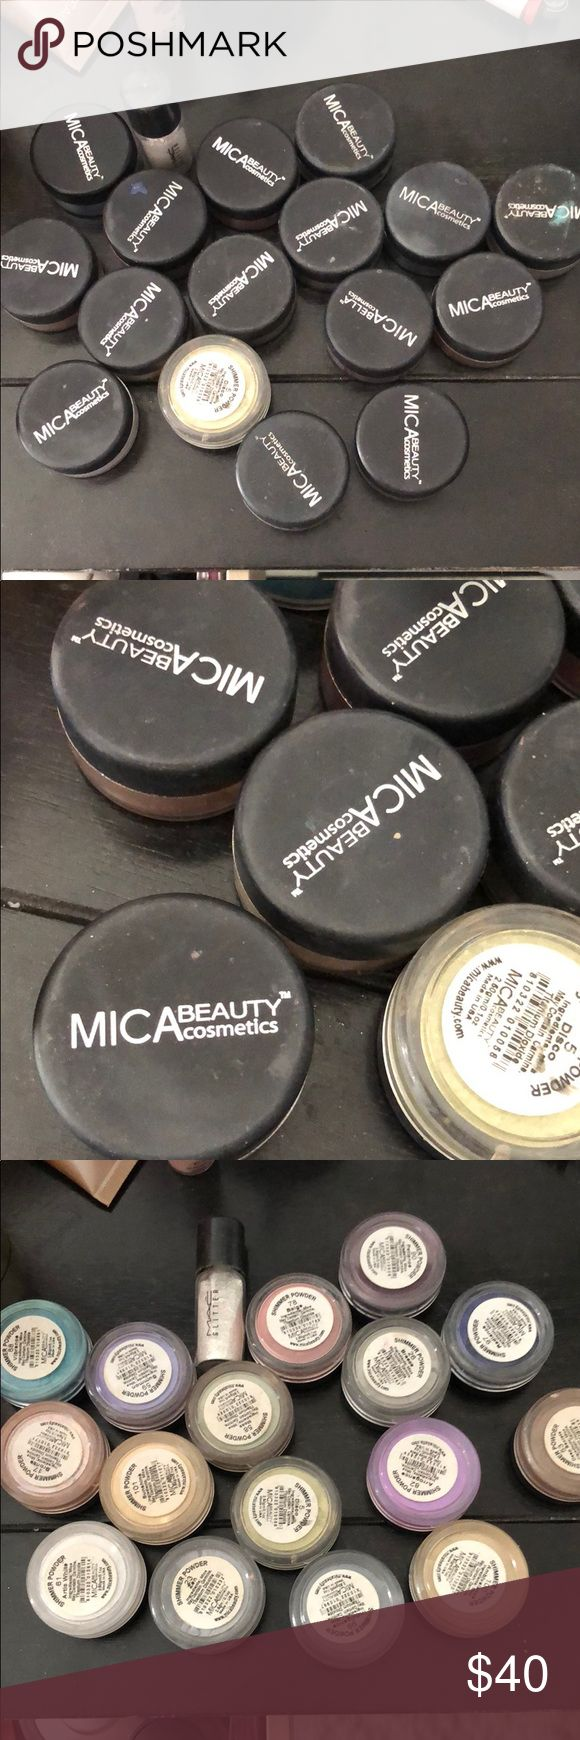 """Mica beauty loose eyeshadow bundle Loose glitter shadows by mica beauty. Never used. All different colors! Beautiful glitter colors! One mac glitter eyeshadow""""goldrift"""". Selling as a bundle Makeup Eyeshadow"""